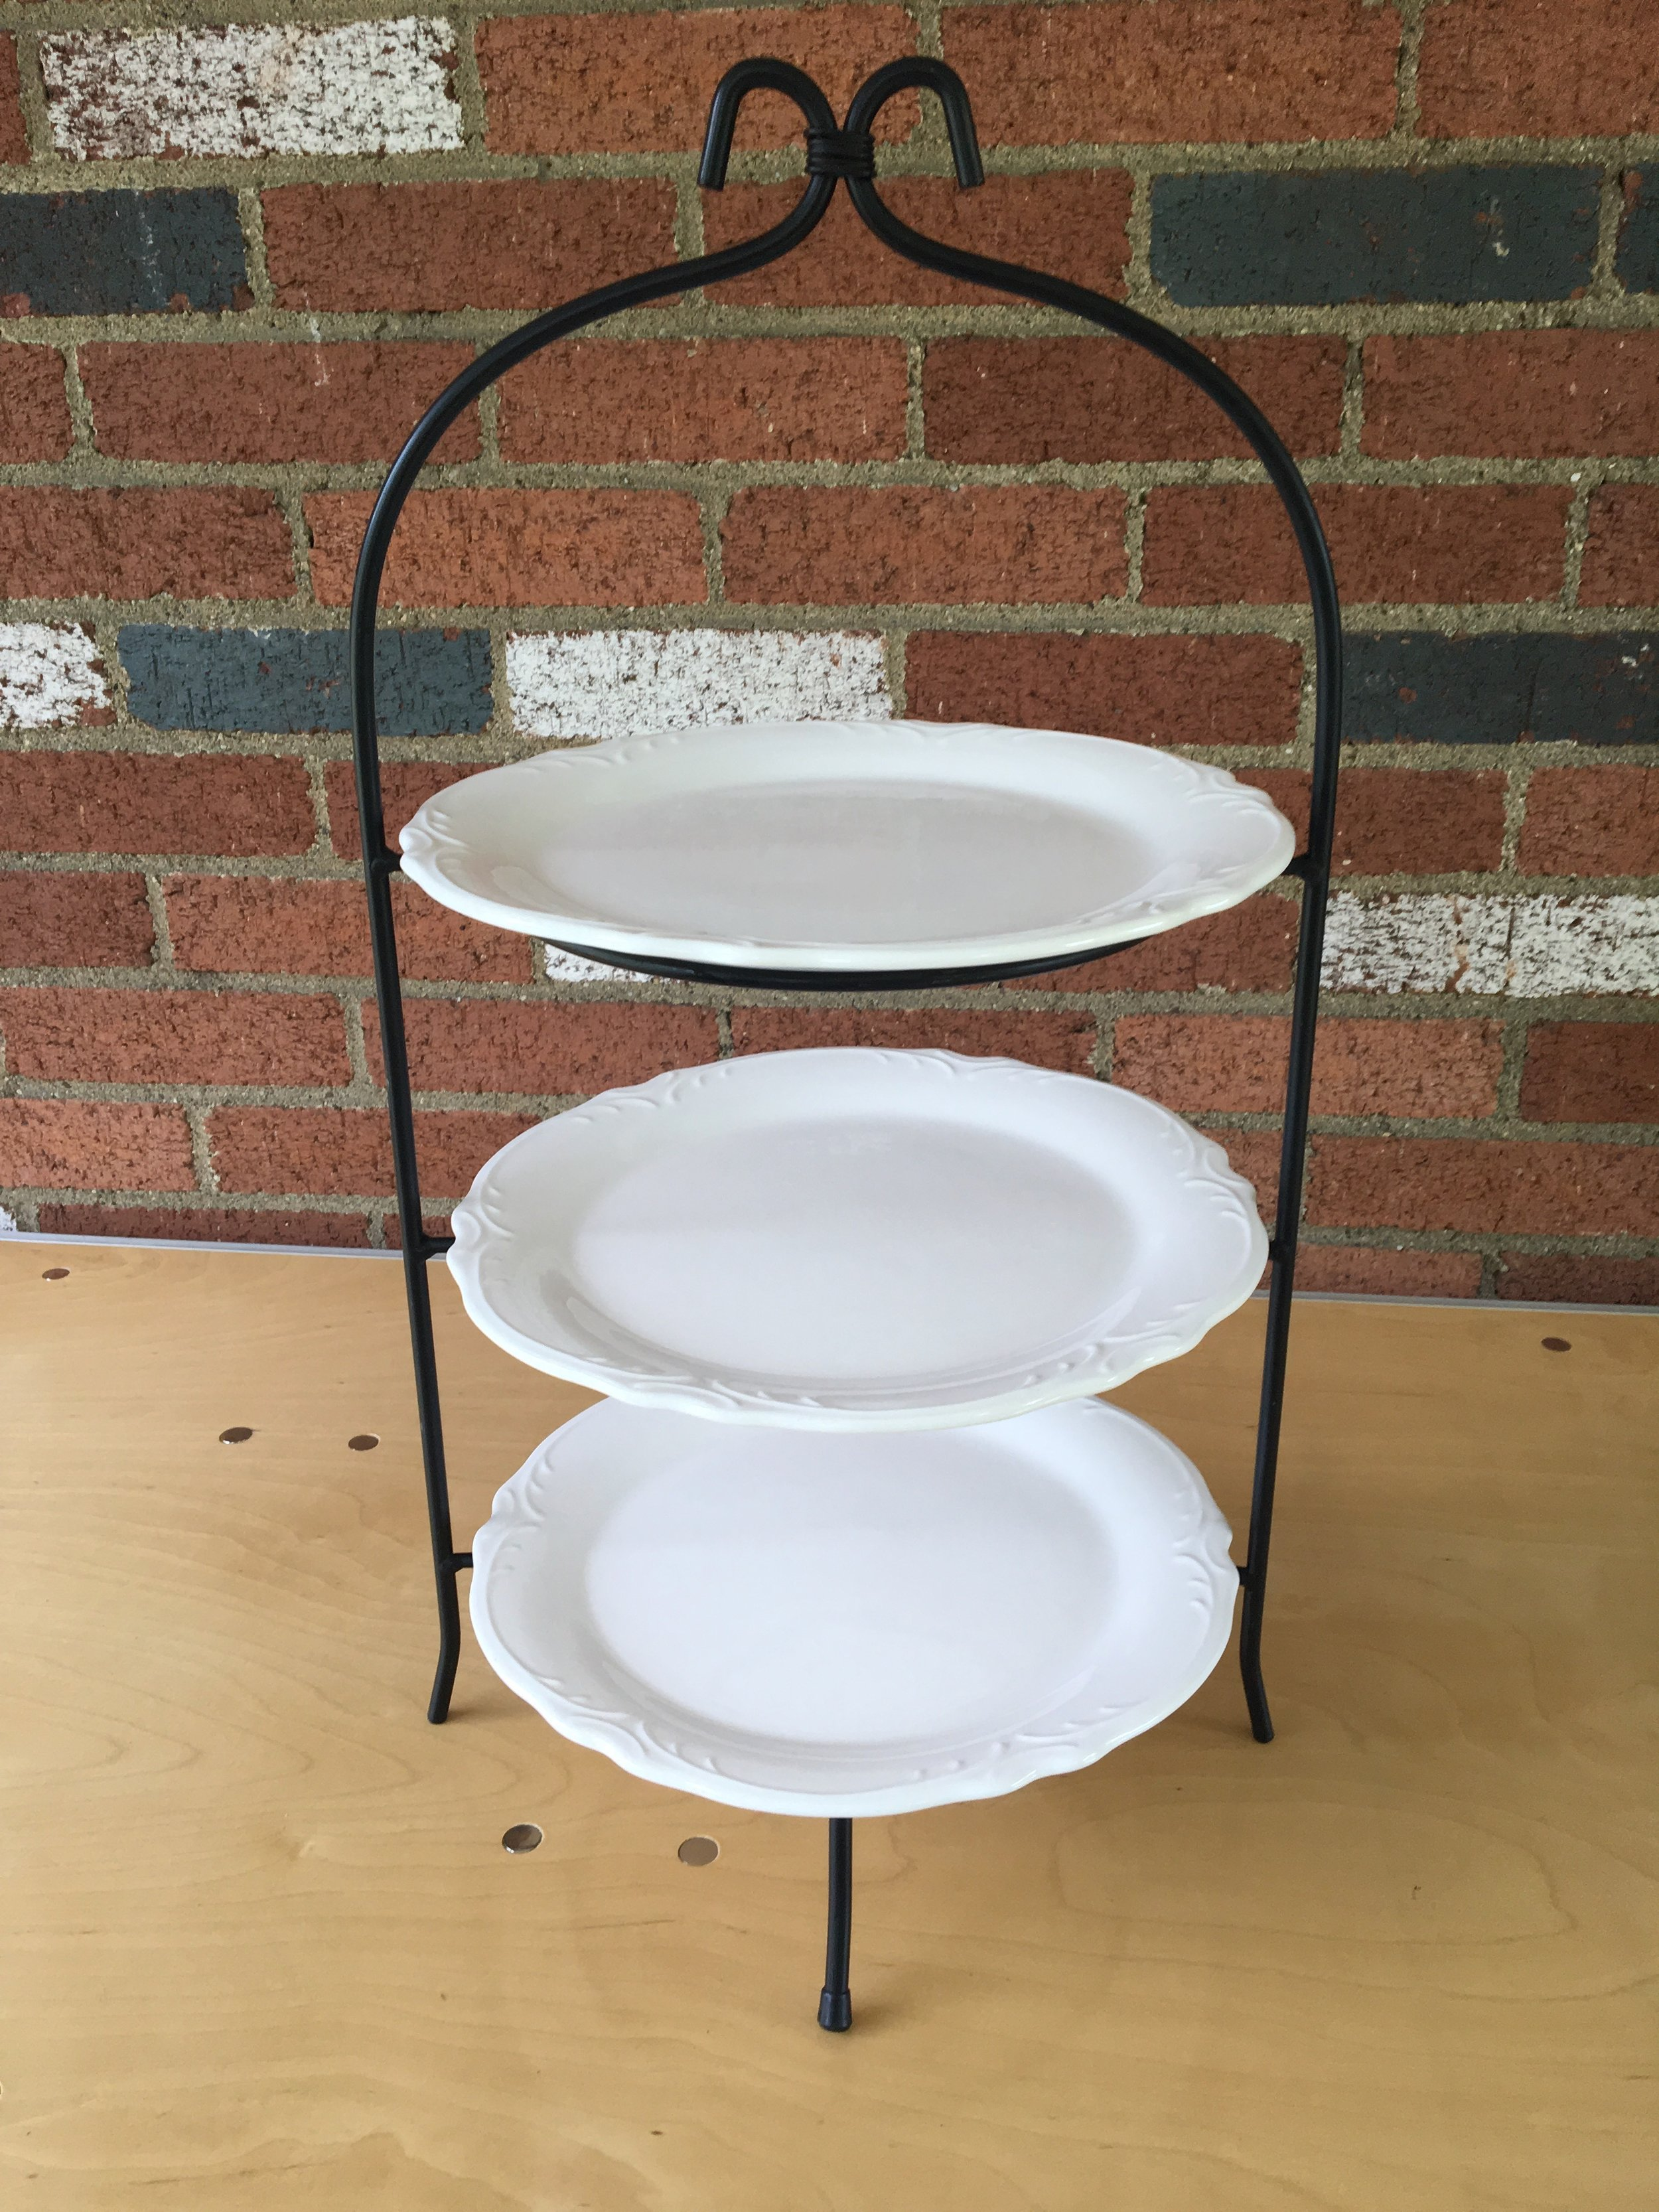 Tiered Cookie or Charcuterie Plates